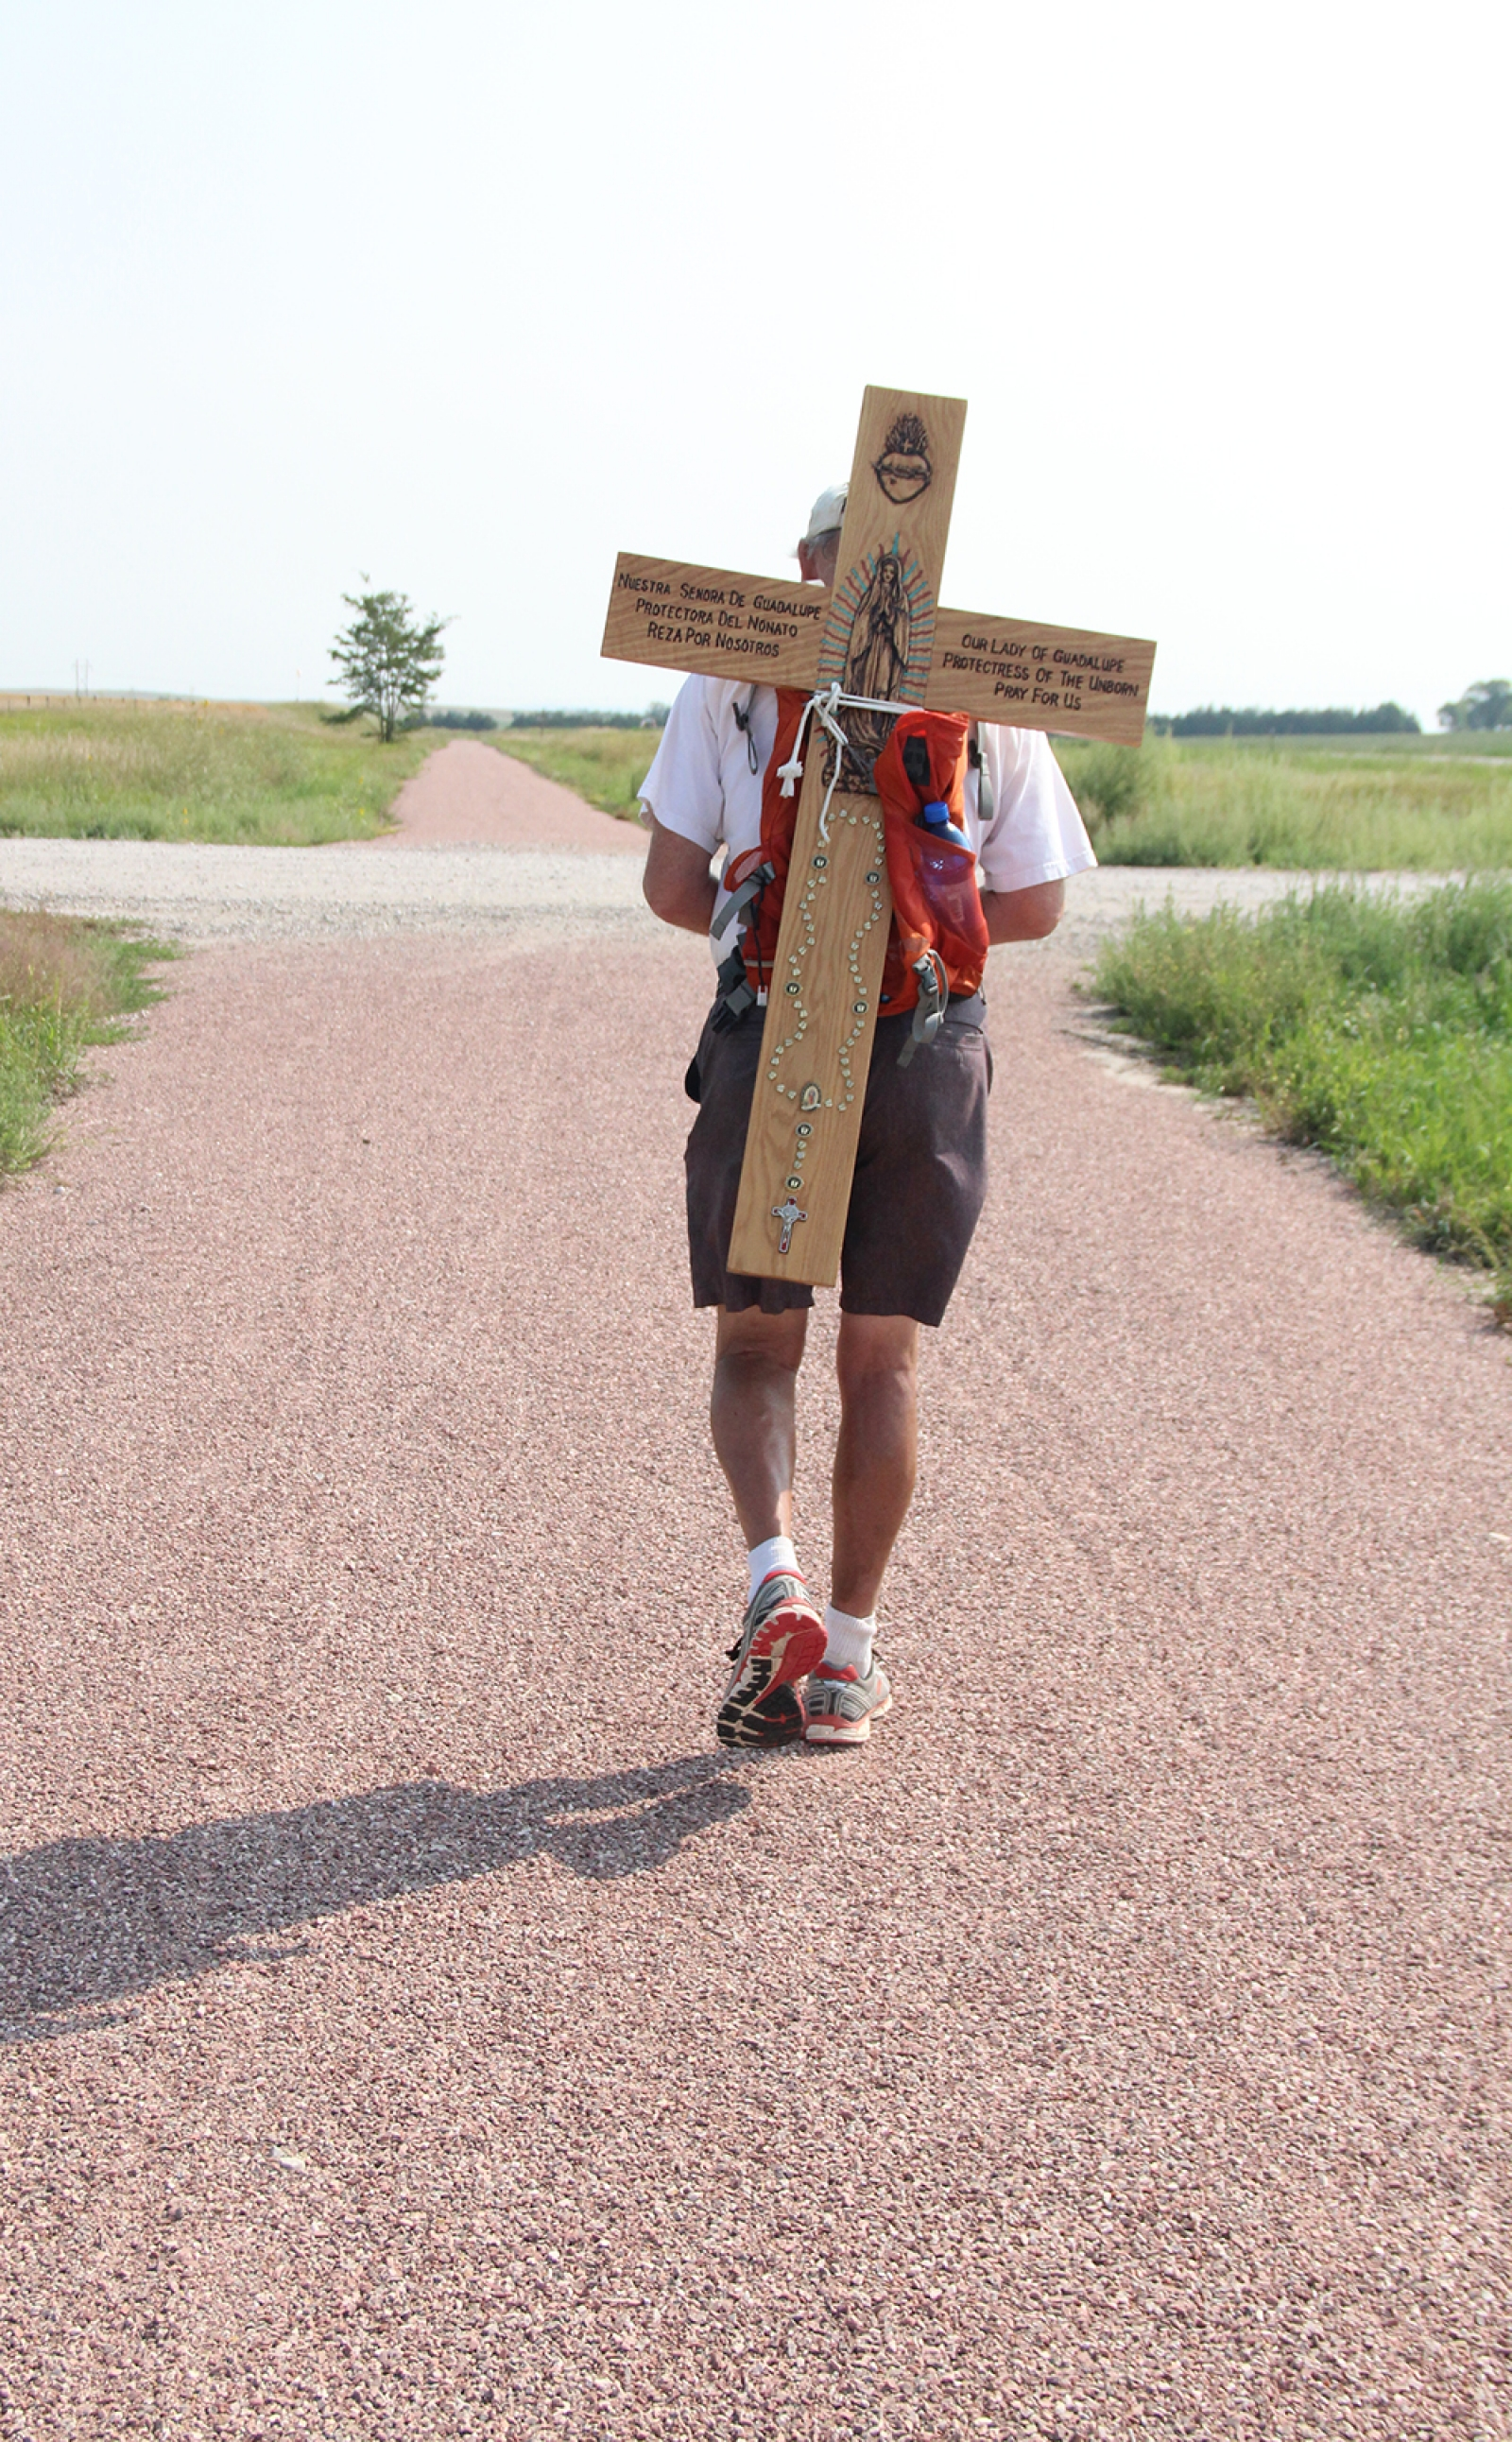 John Moore walks along the Cowboy Trail with a cross on his back. Moore is part of the way finished with his March for Life pilgrimage that ends in Washington D.C.